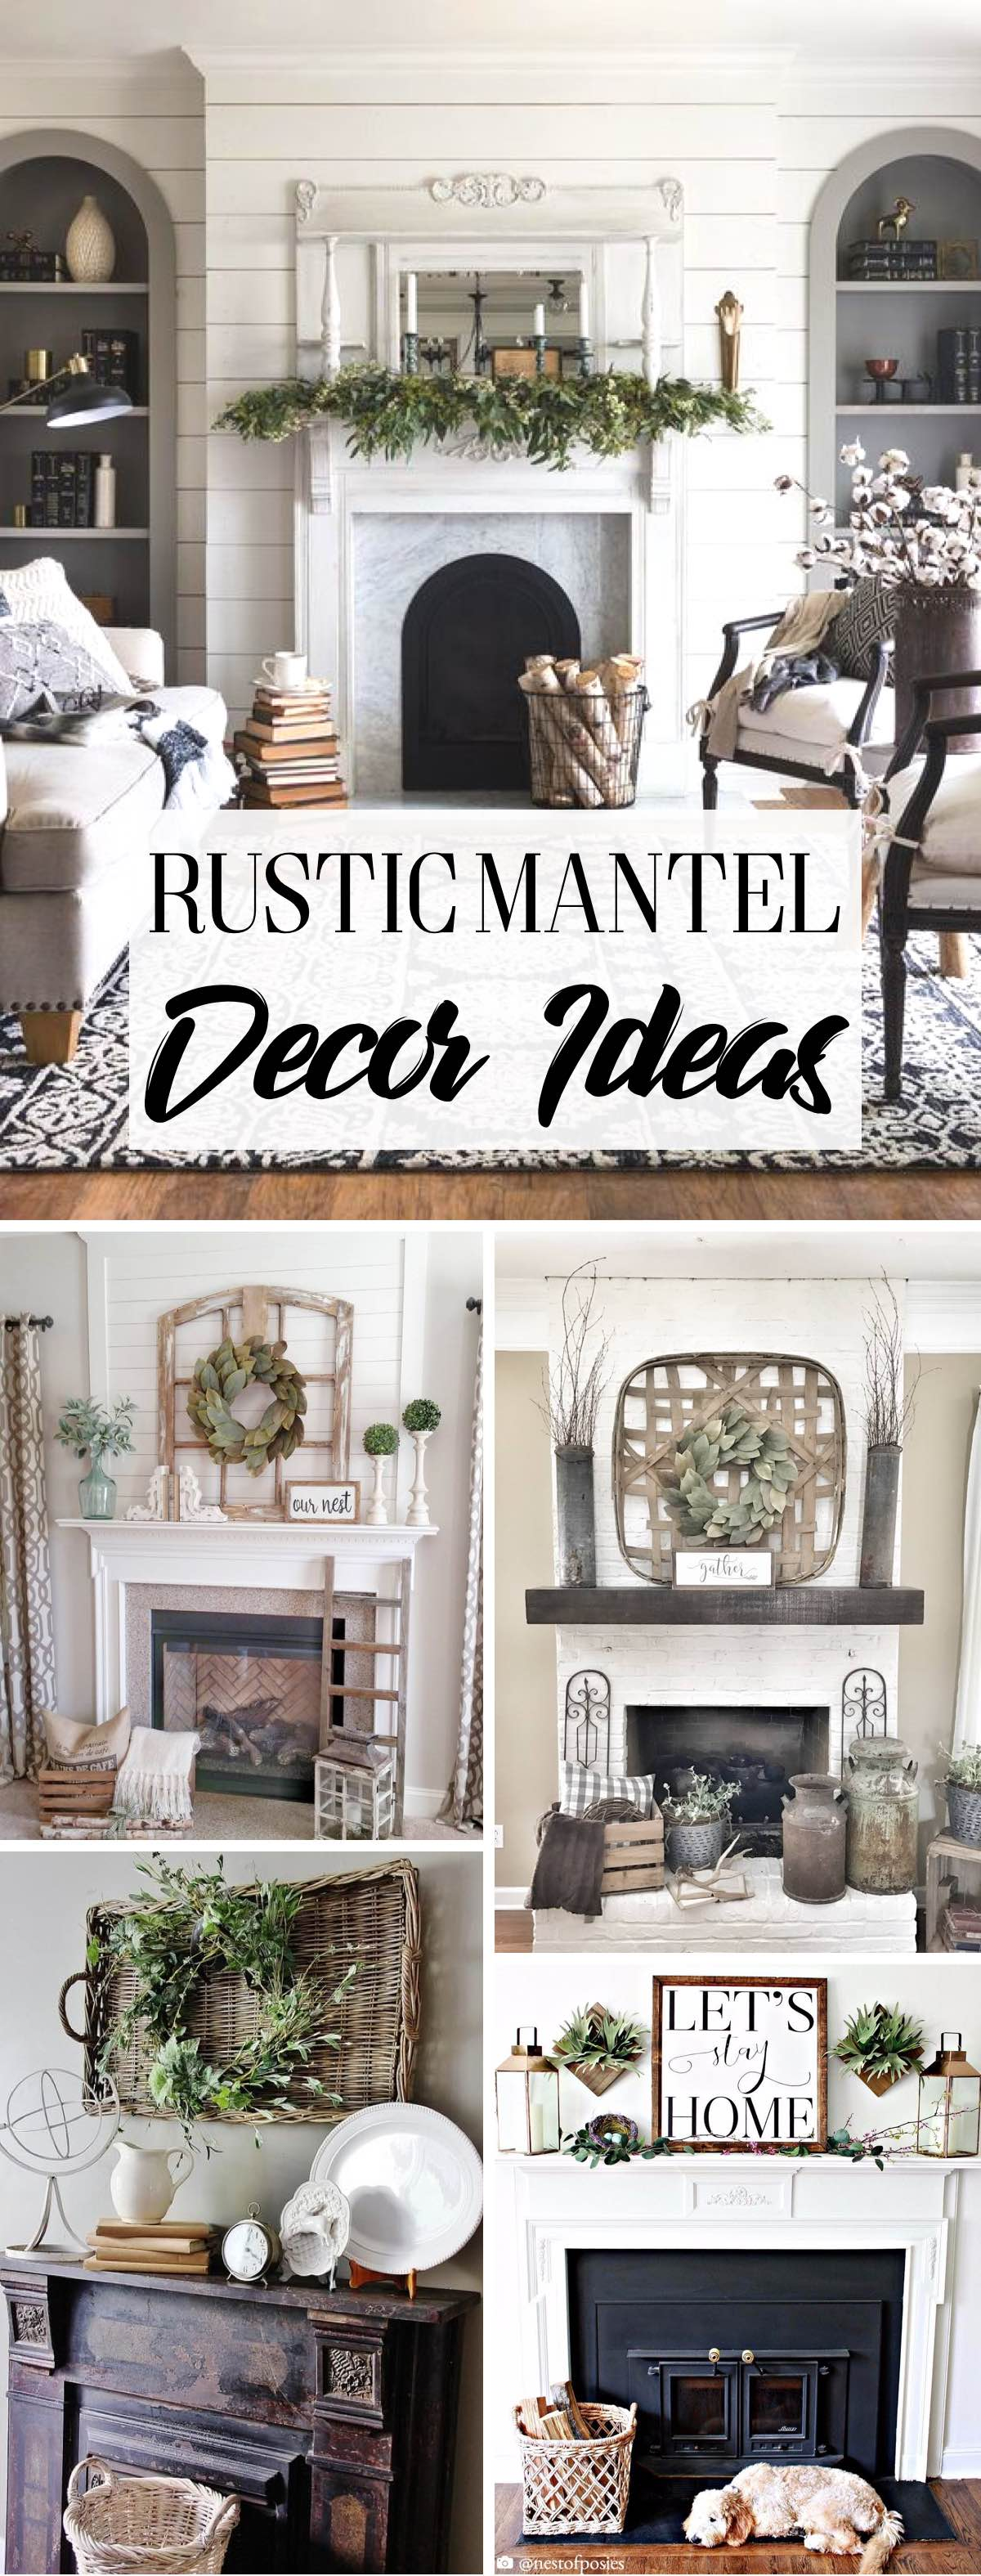 14 Glorious Rustic Mantel Decor Ideas Youll Fall Head Over